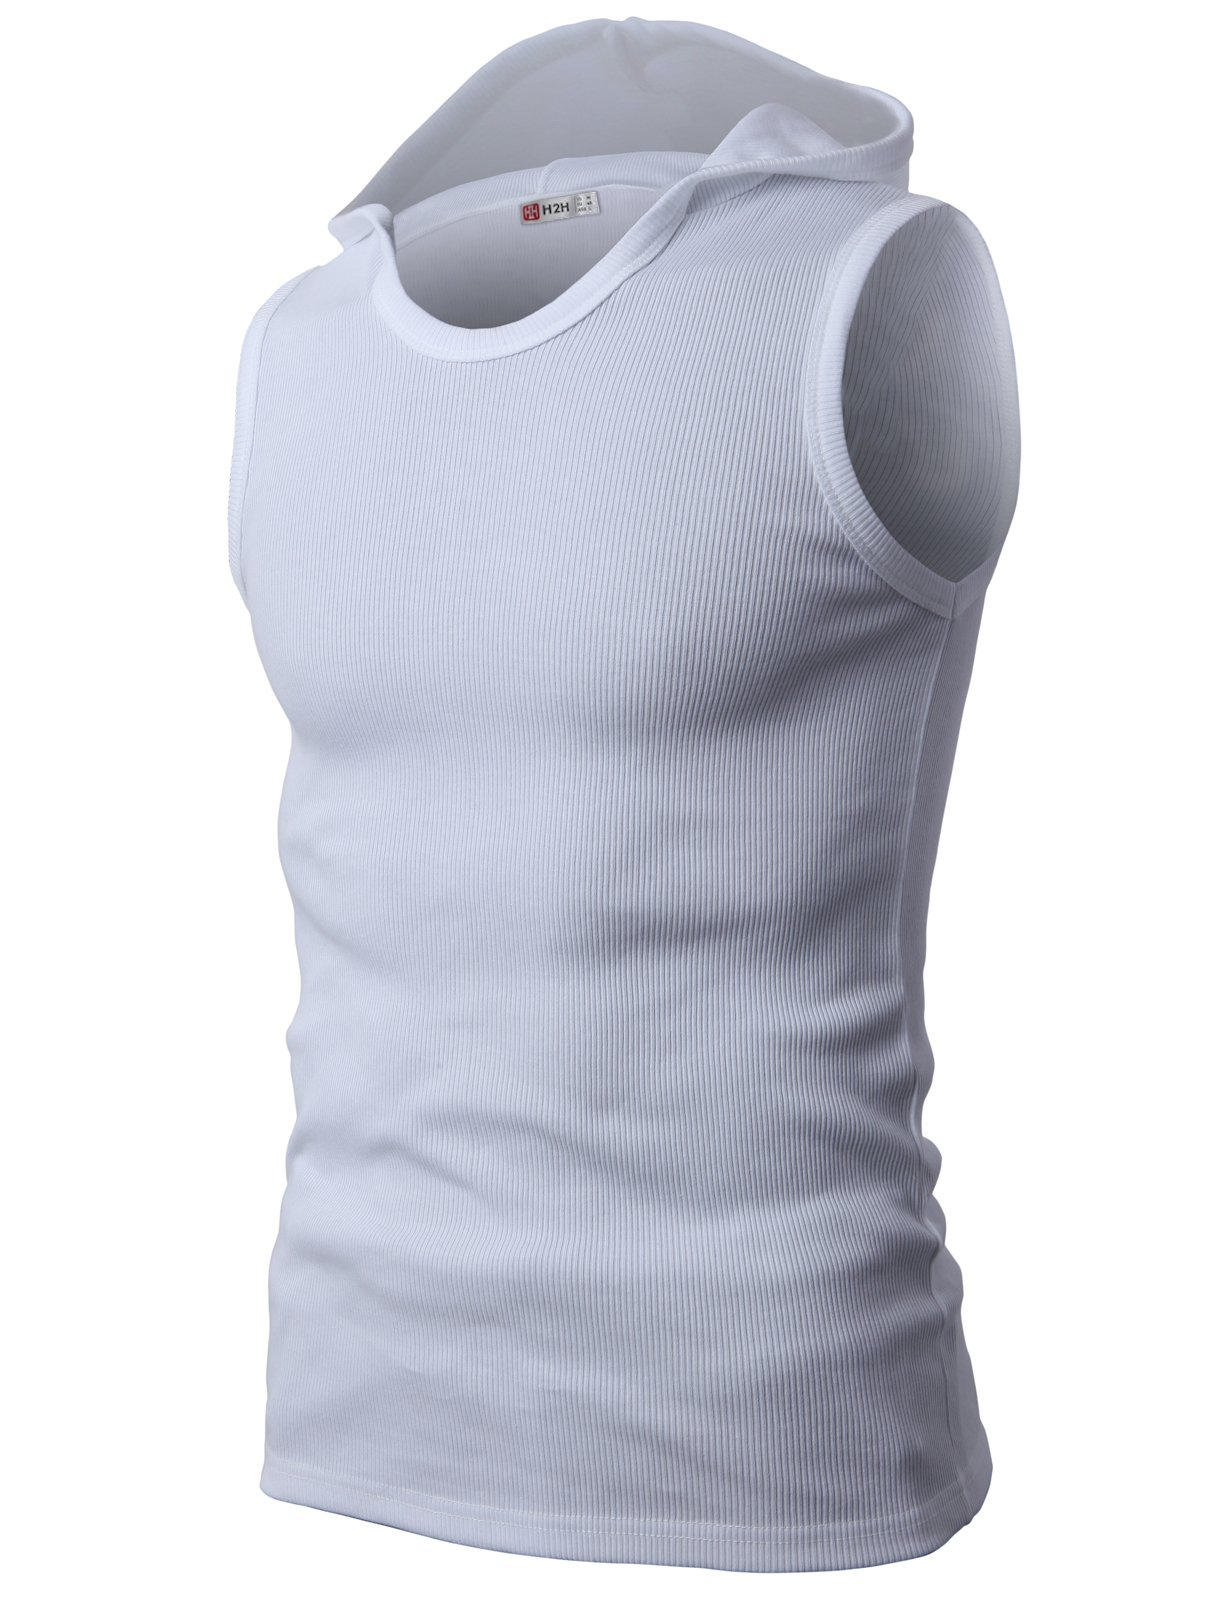 H2H Mens Fashion Casual Hooded Sleeveless T-Shirts White US S/Asia M (JPSK05)